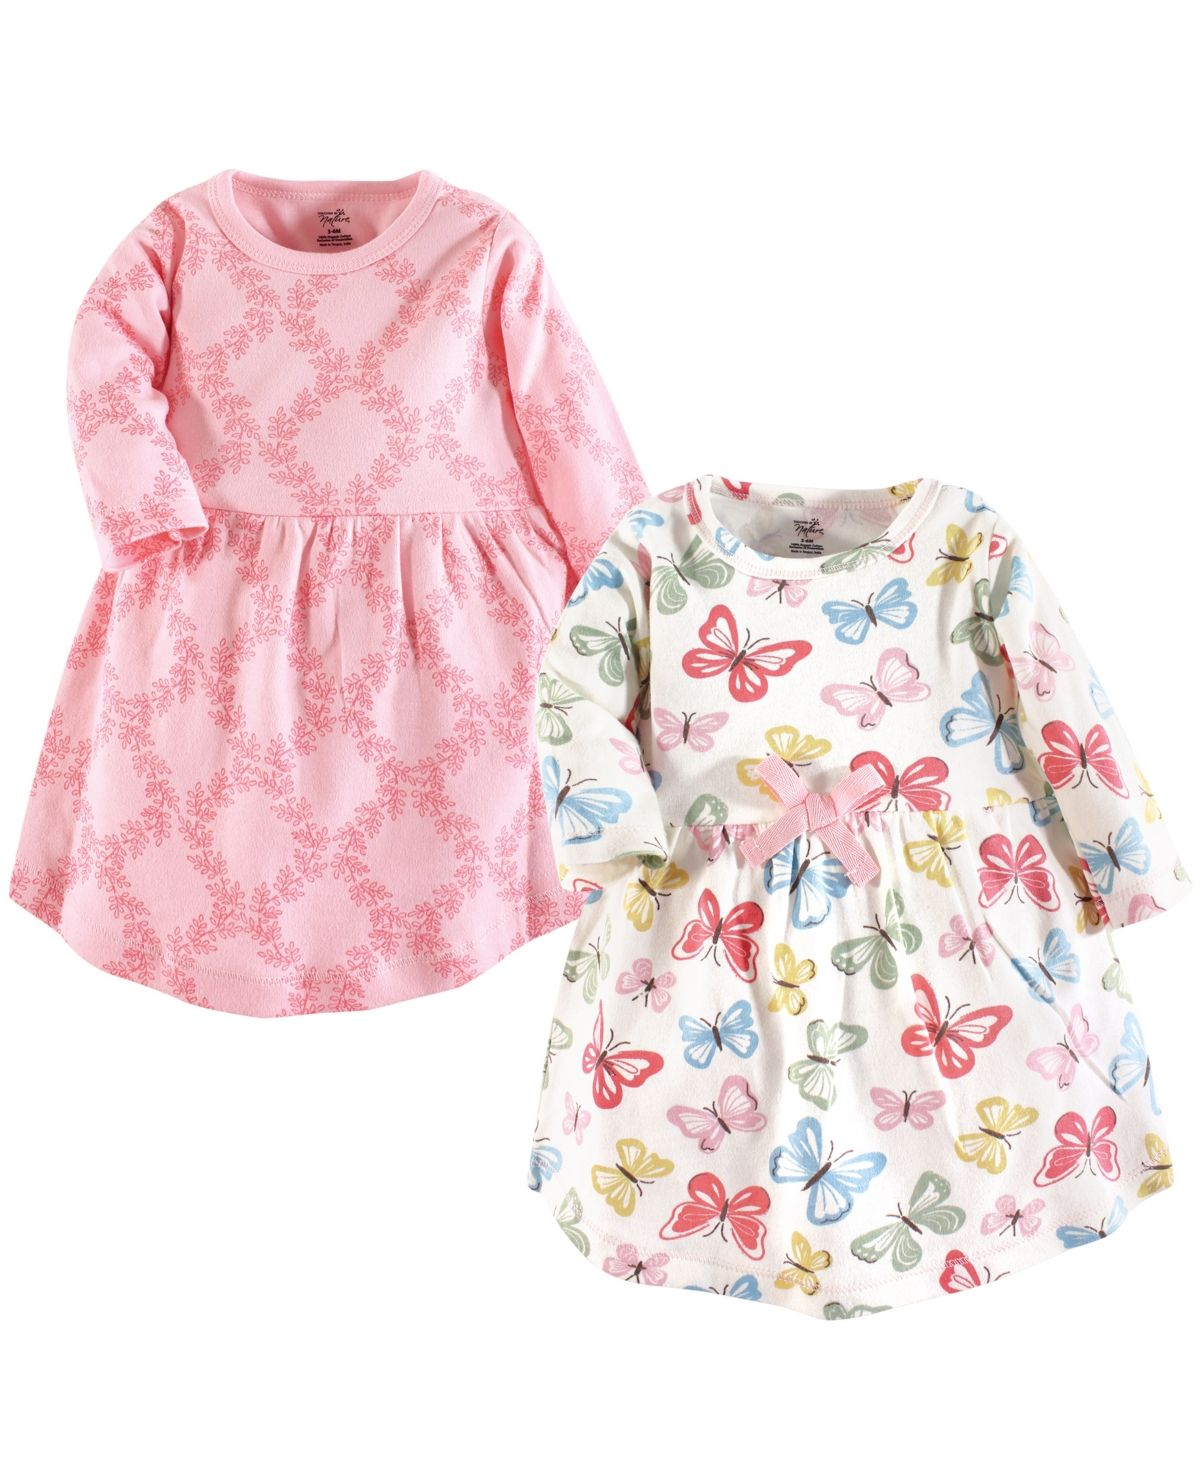 Touched By Nature Baby Girl Organic Cotton Dress Long Sleeve 2 Pack Reviews All Girls Dresses Kids Macy S In 2020 Organic Cotton Dress Organic Dress Baby Girl Dress [ 1467 x 1200 Pixel ]